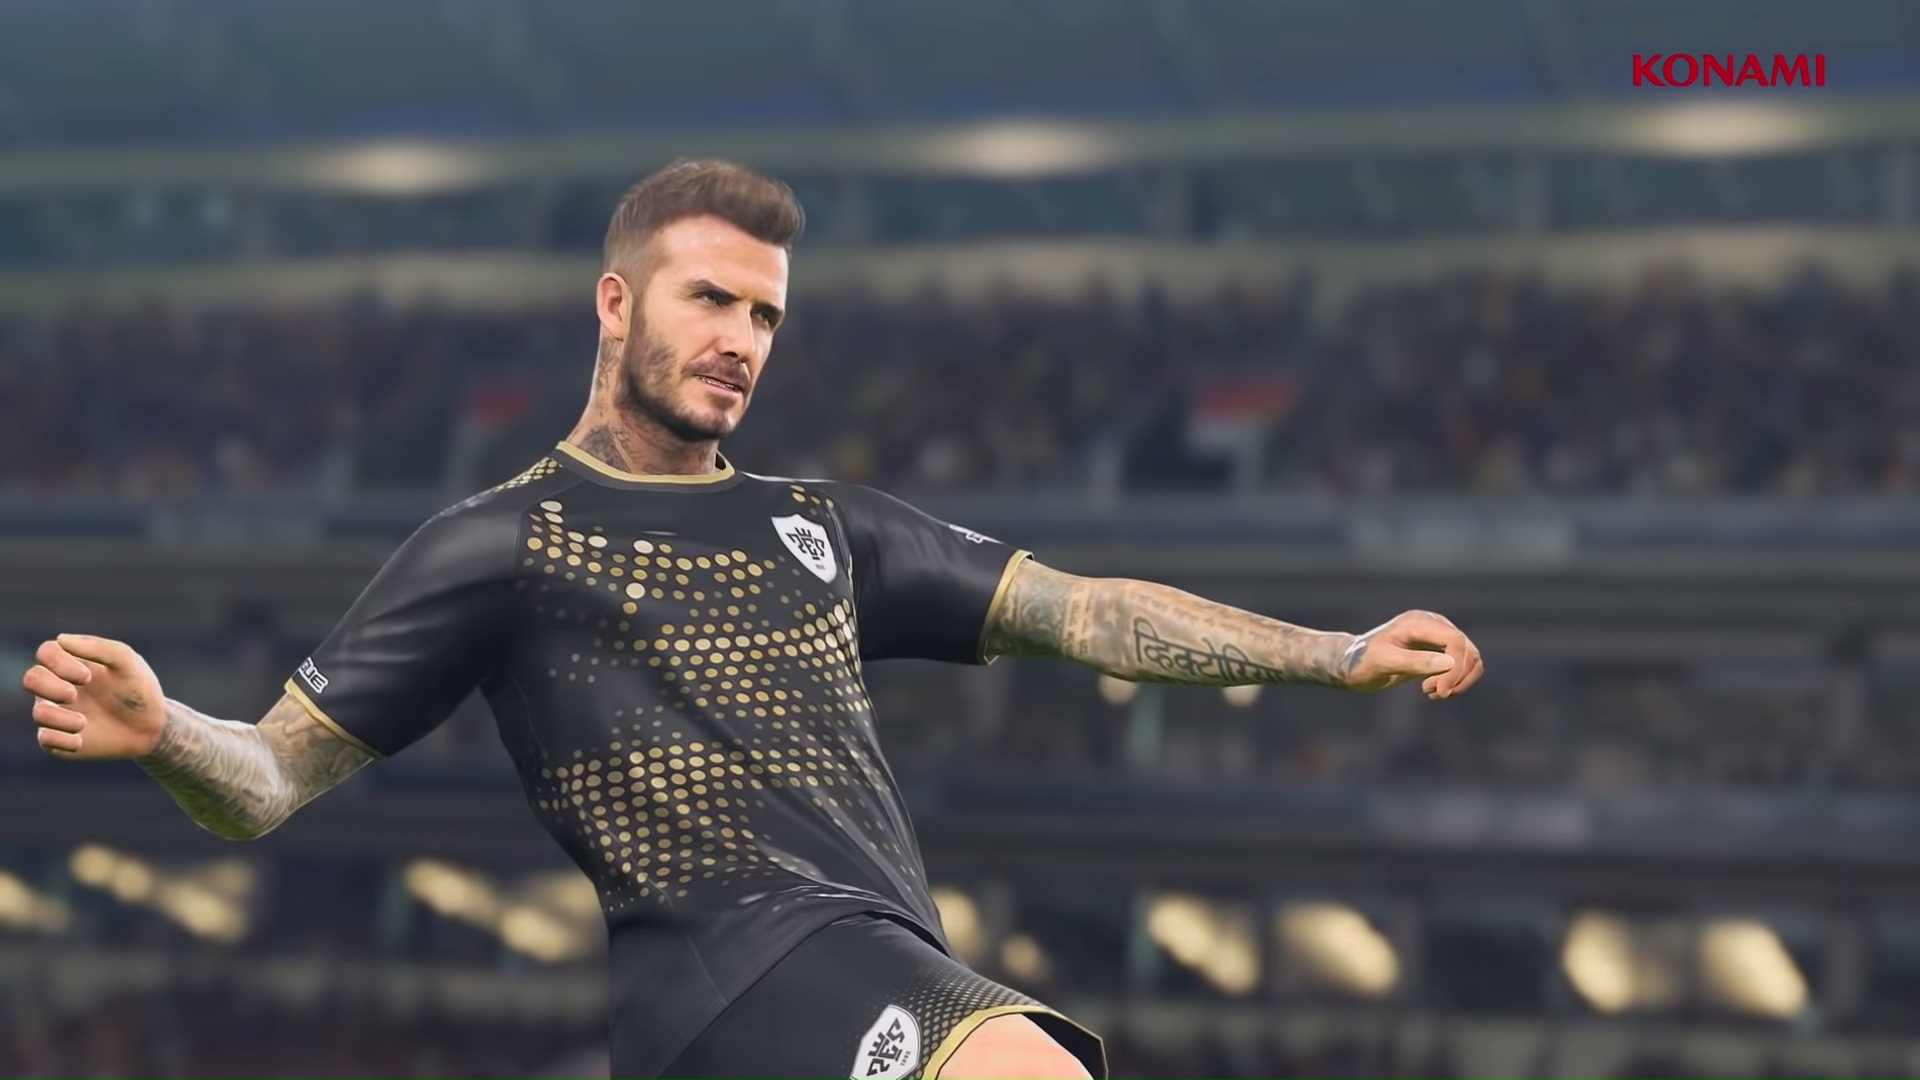 PES 2019 E3 Trailer screenshot (1)